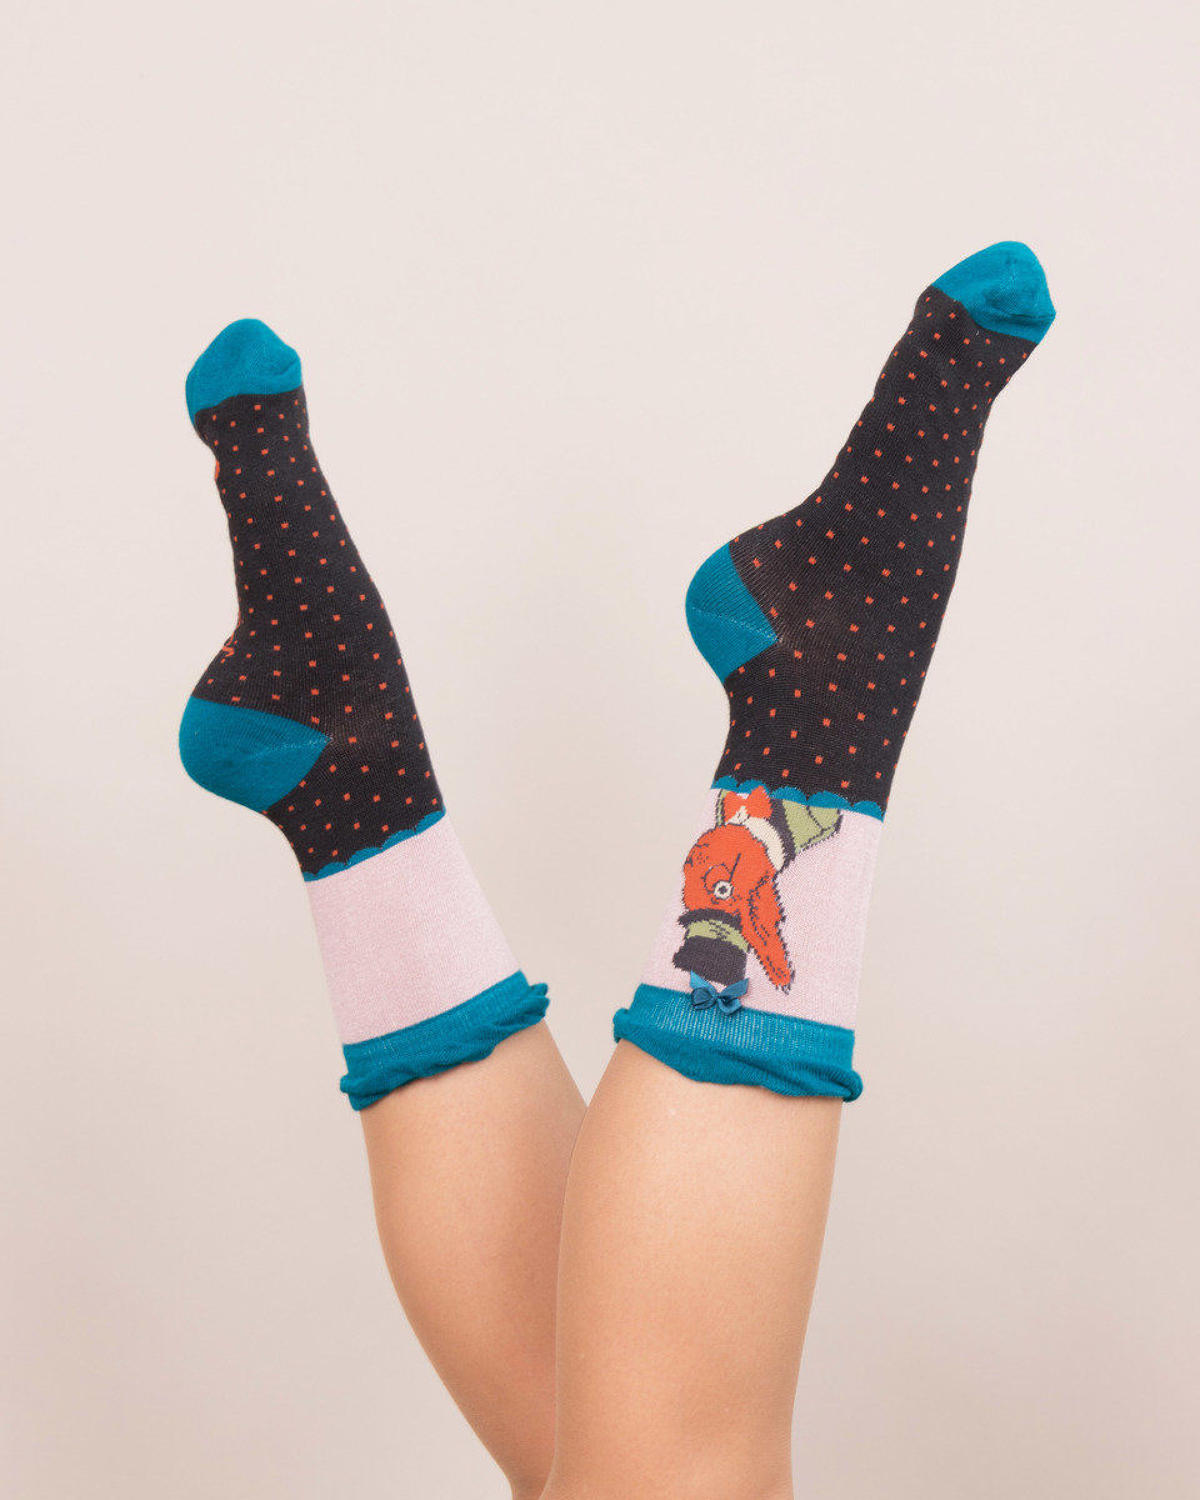 Powder - Mr Squirrel ankle socks - One size - Charcoal